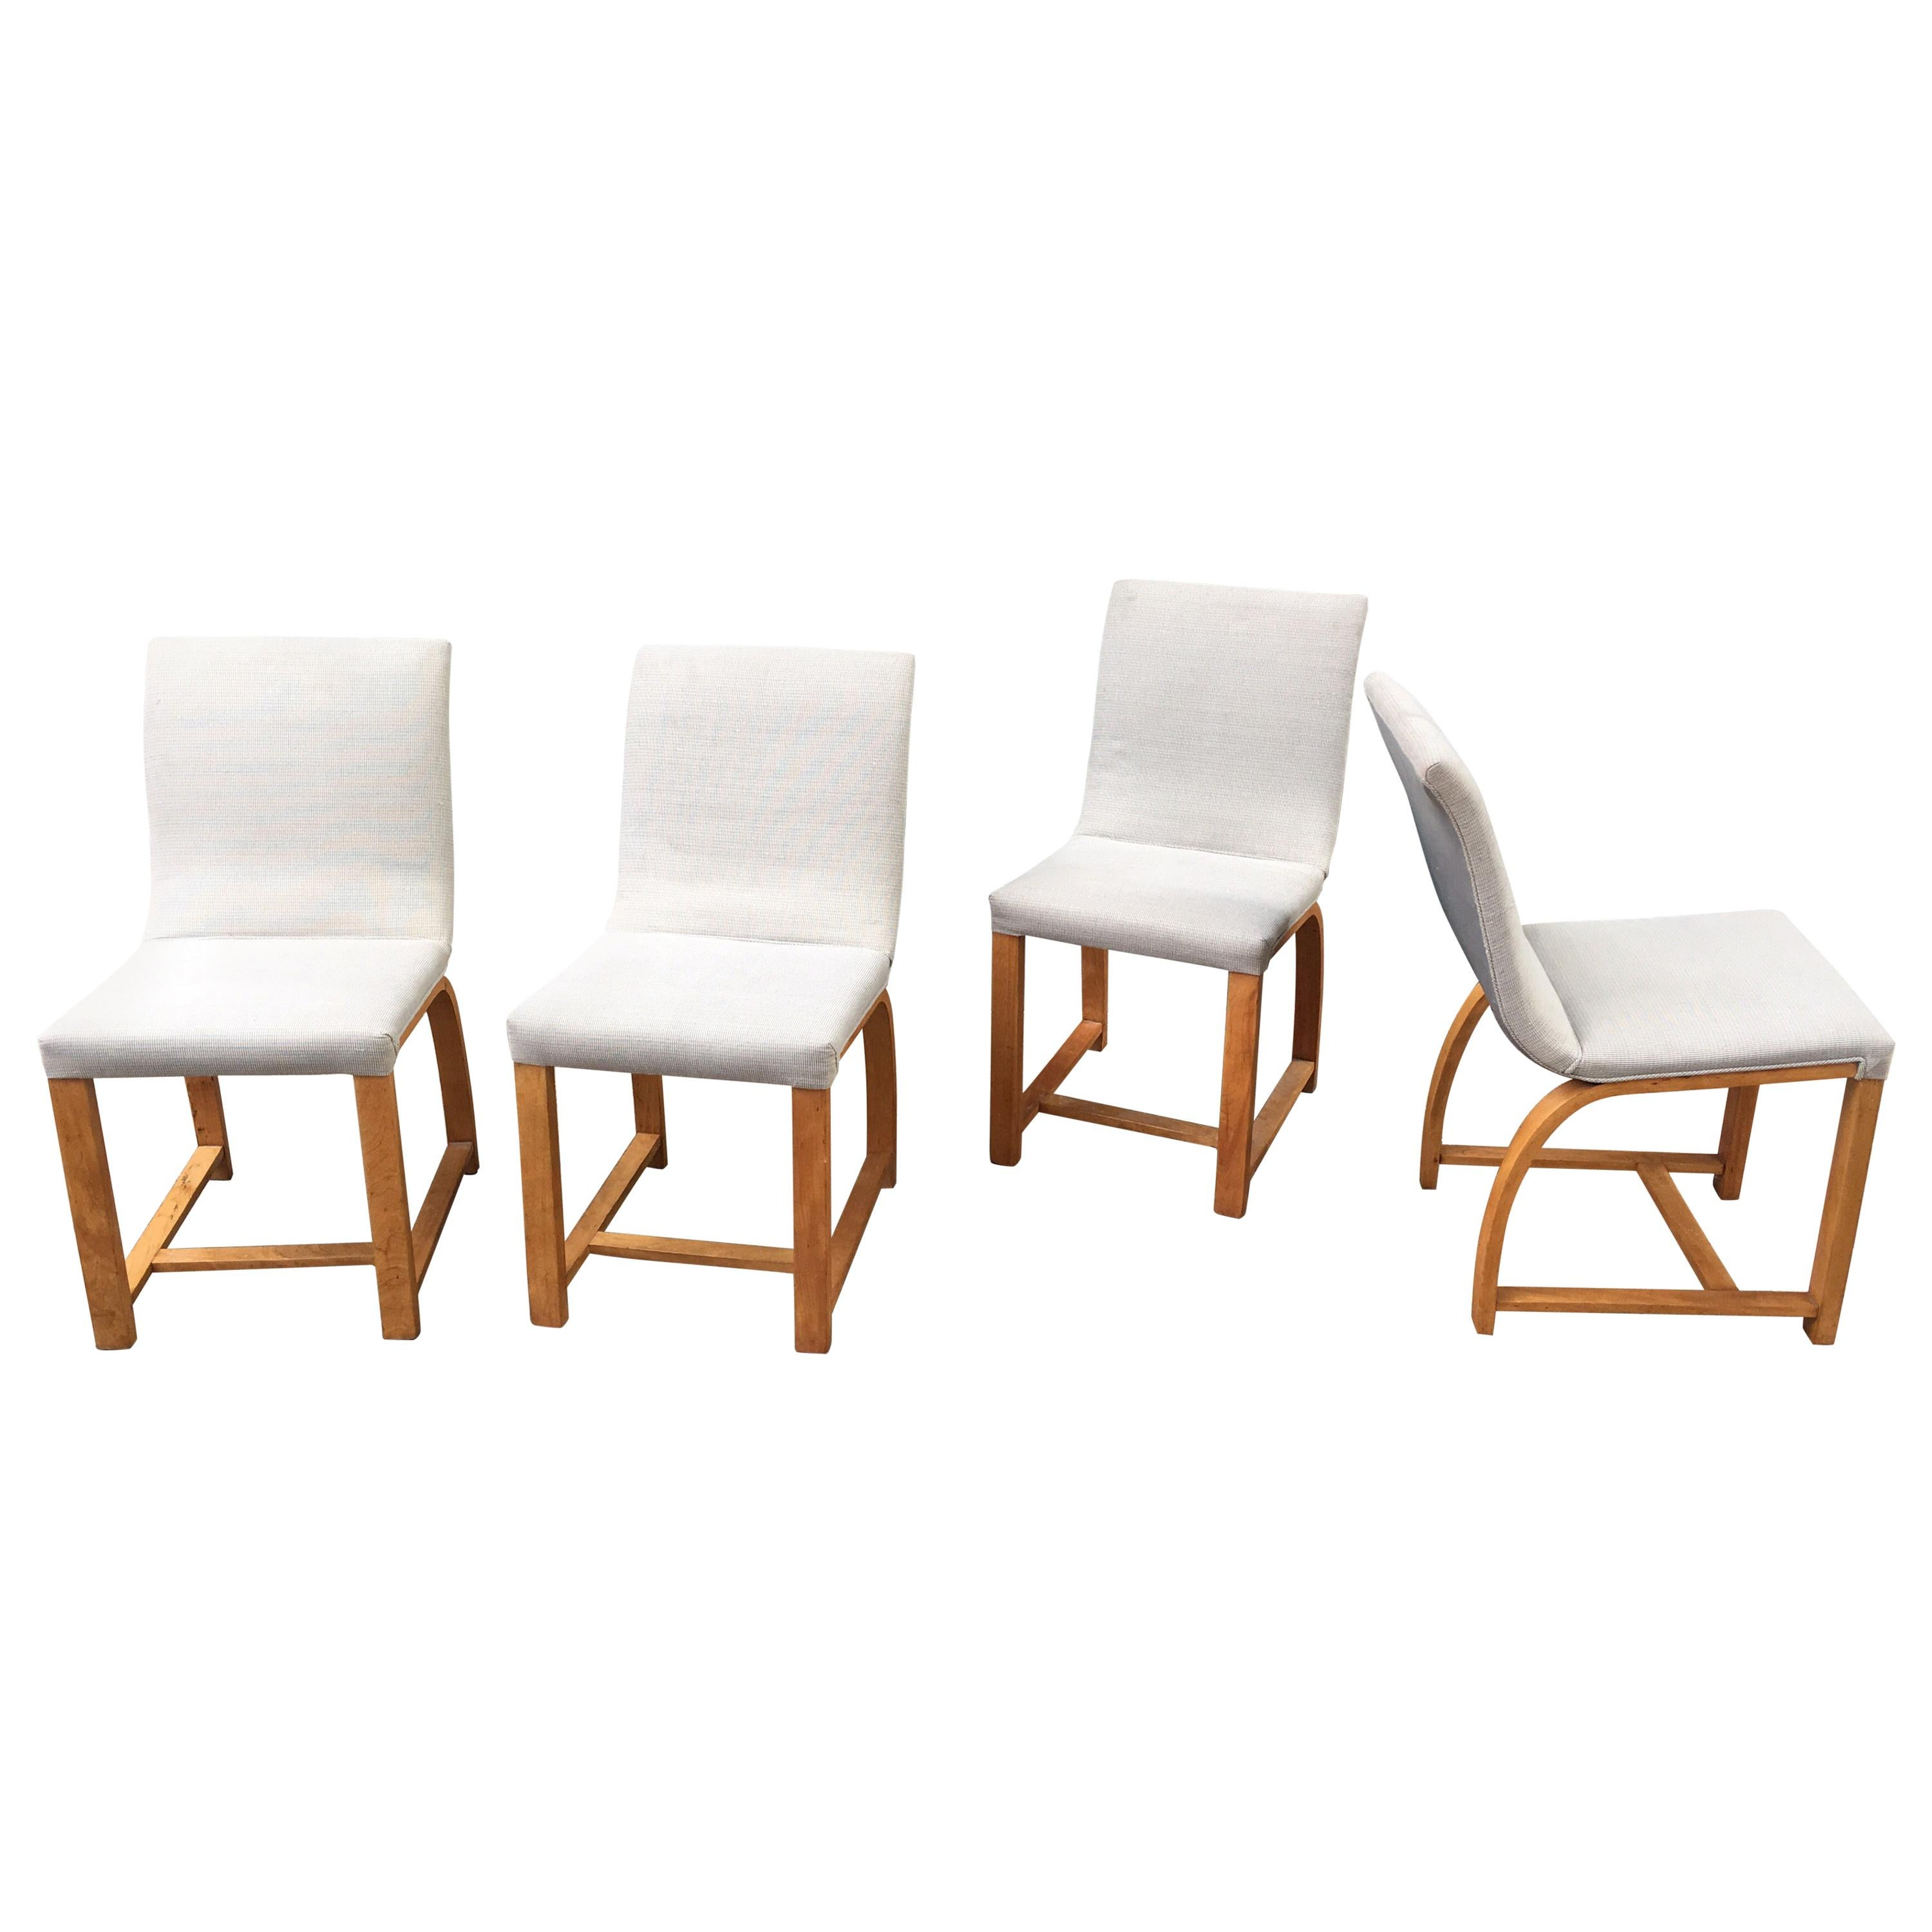 Gilbert Rohde for Heywood Wakefield Set of 4 Dining Chairs